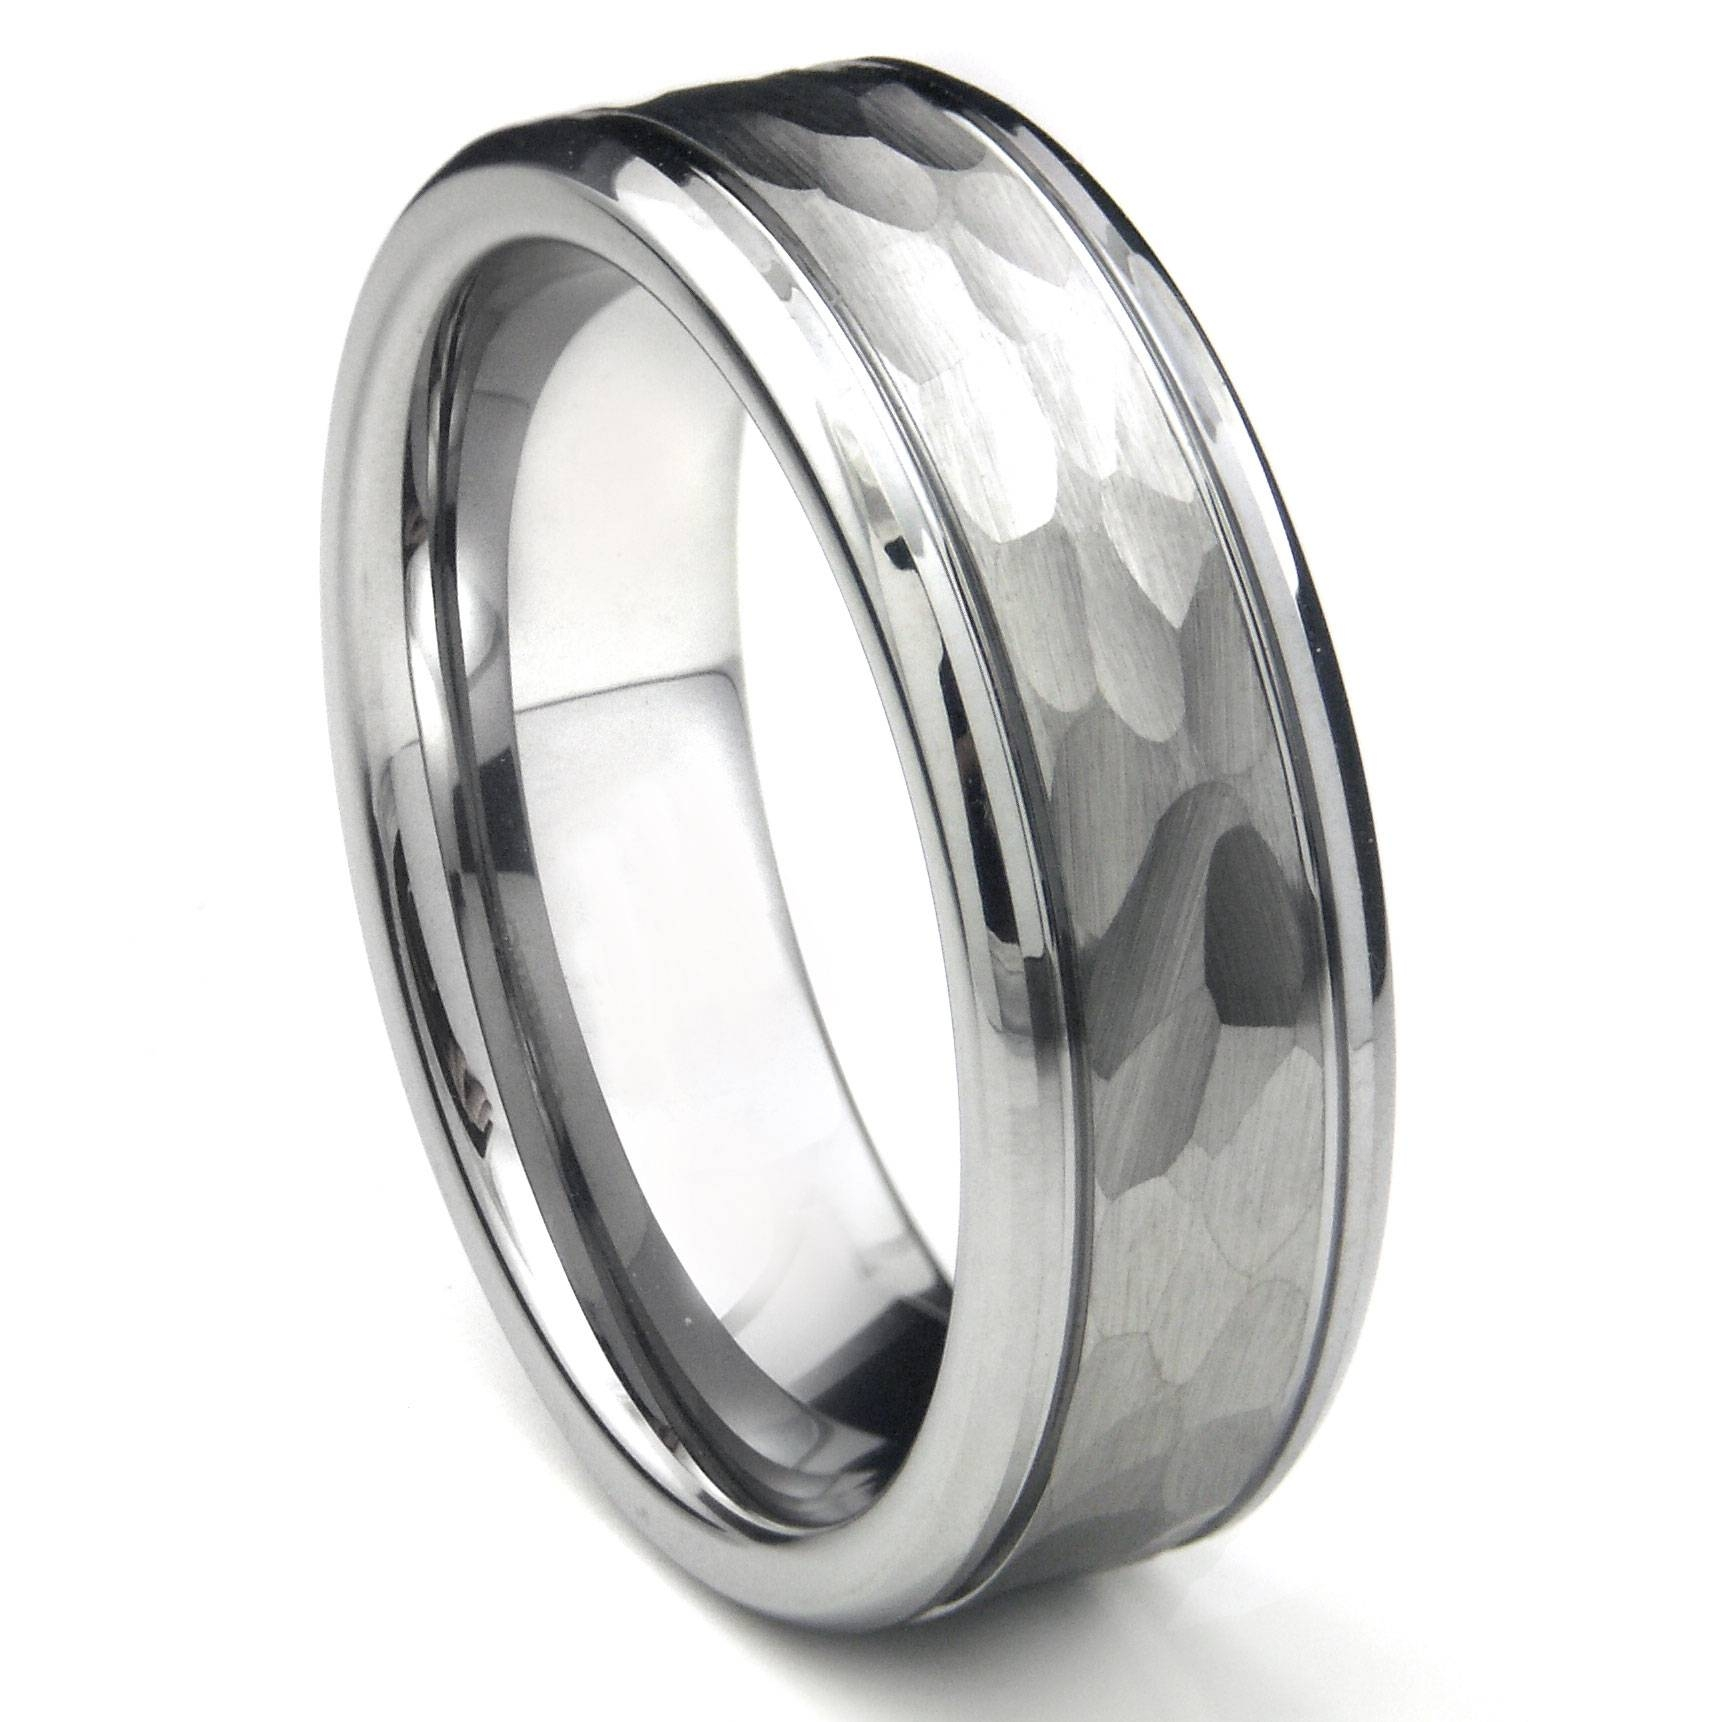 Tungsten Carbide Hammer Finish Wedding Band Ring /w Grooves Pertaining To Strongest Metal Wedding Bands (View 12 of 15)